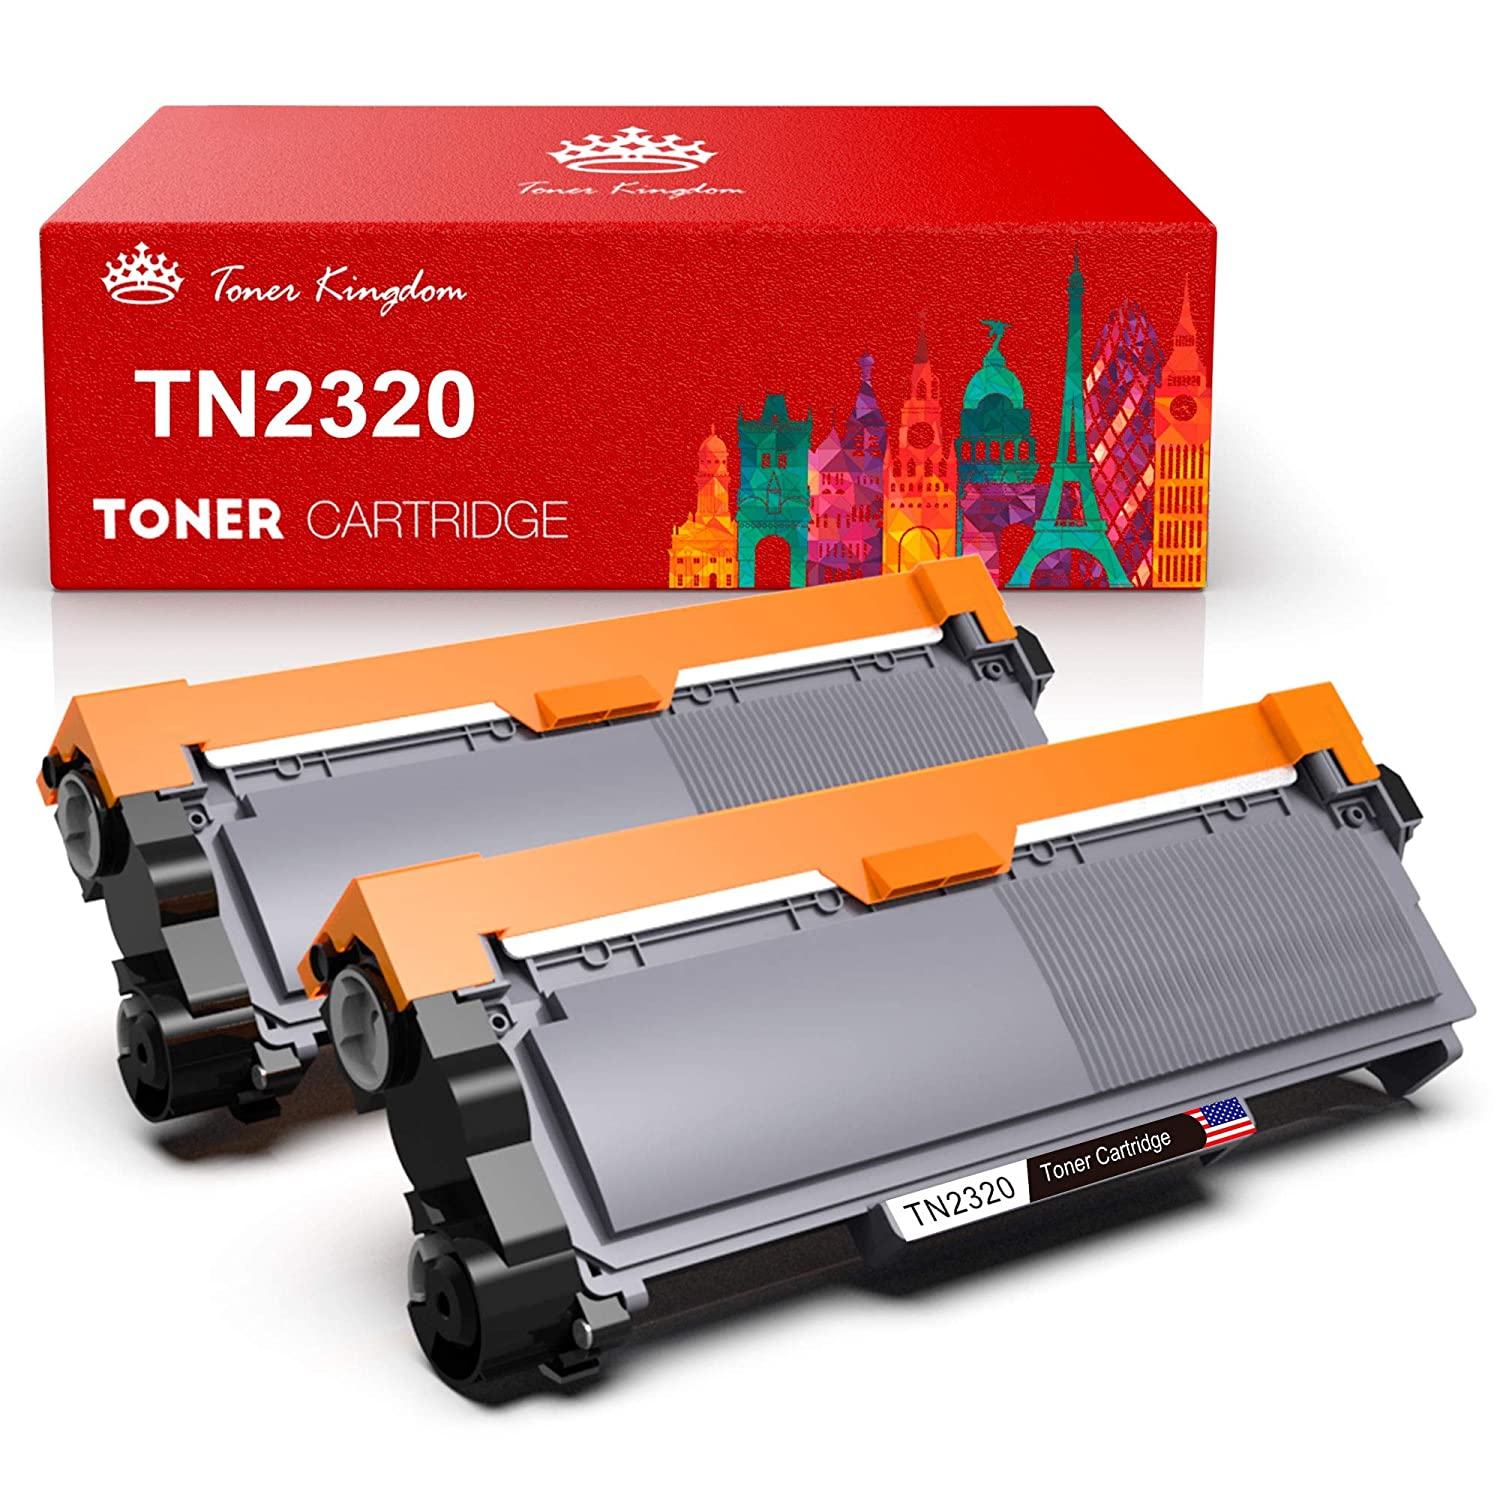 Toner Kingdom 2 Pack Cartucho de tóner Compatible Brother TN2320 ...